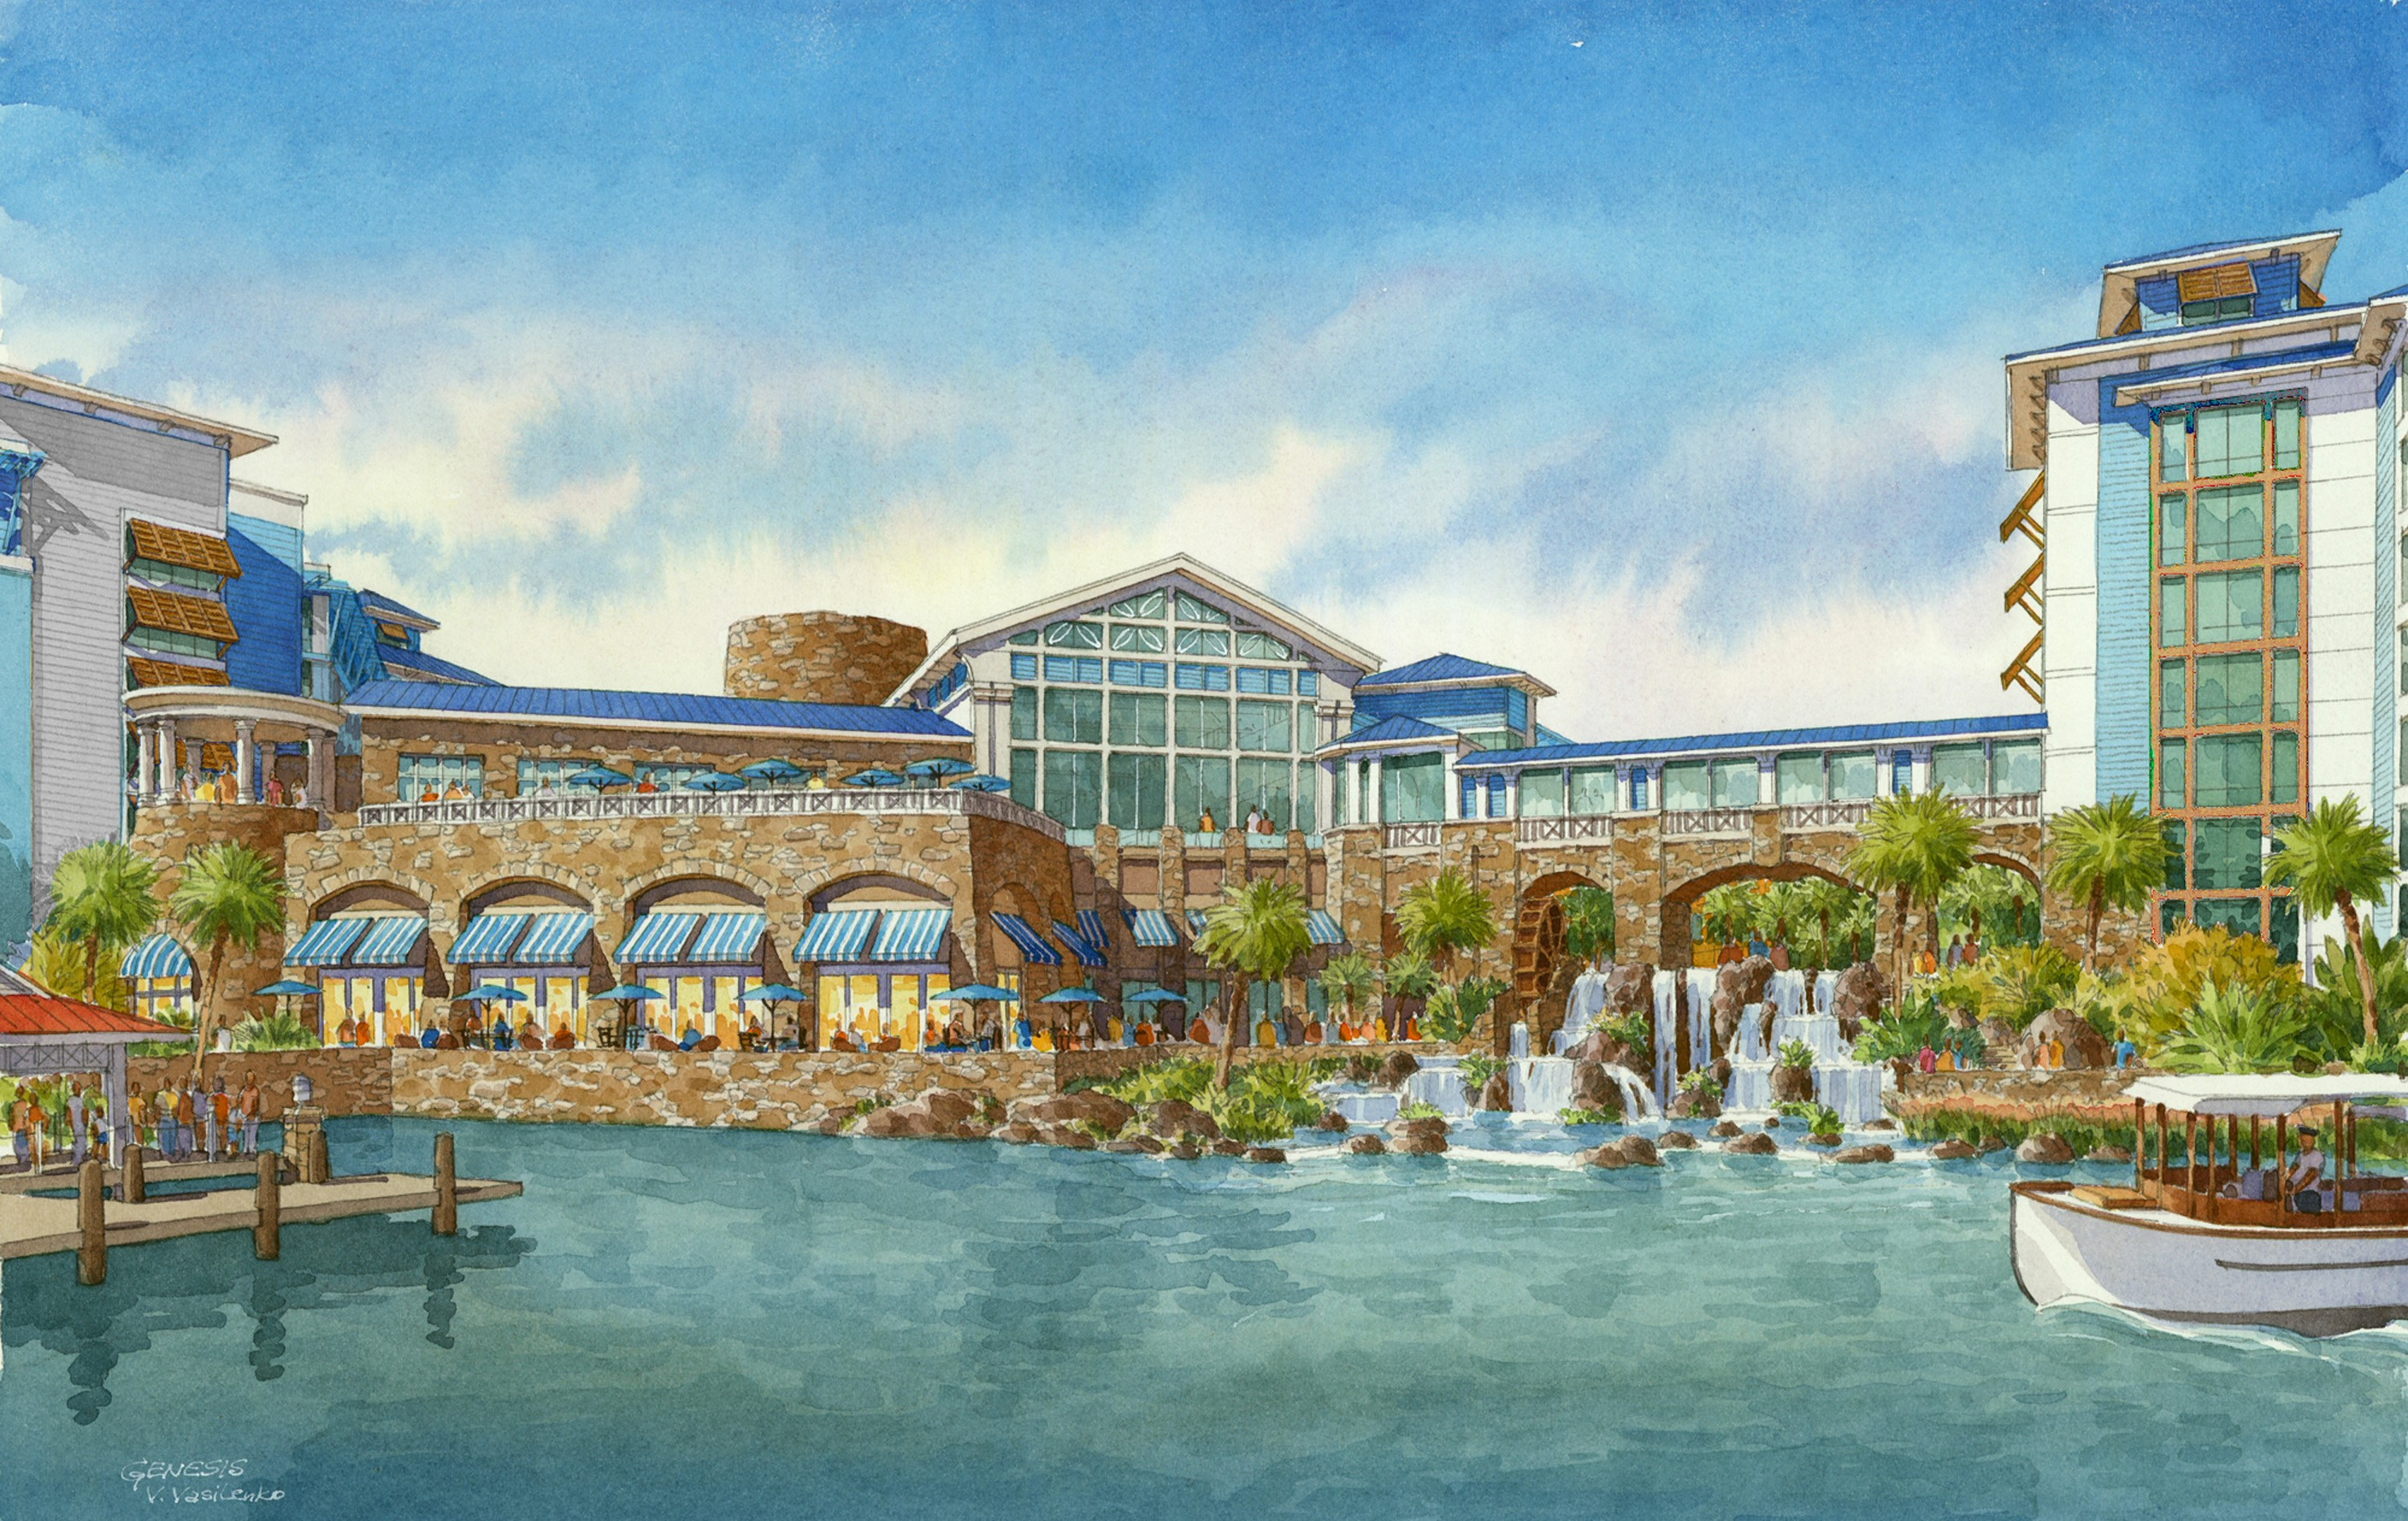 Universal Orlando releases details on new Sapphire Falls